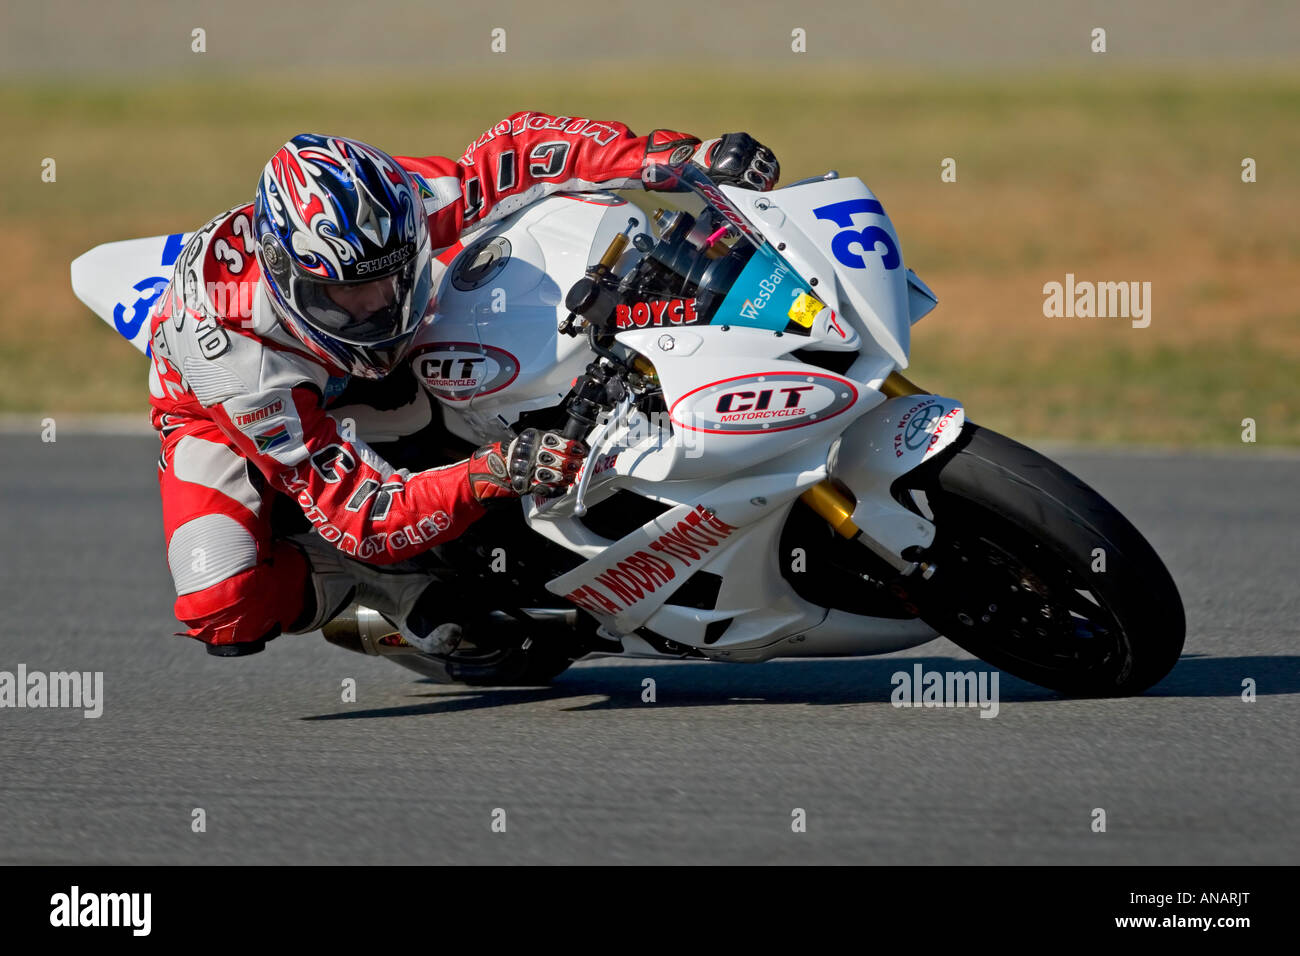 SA Supersport bike action (Royce Odendaal, Yamaha R6), Phakisa racetrack, Welkom, South Africa (5 May 2007) - Stock Image